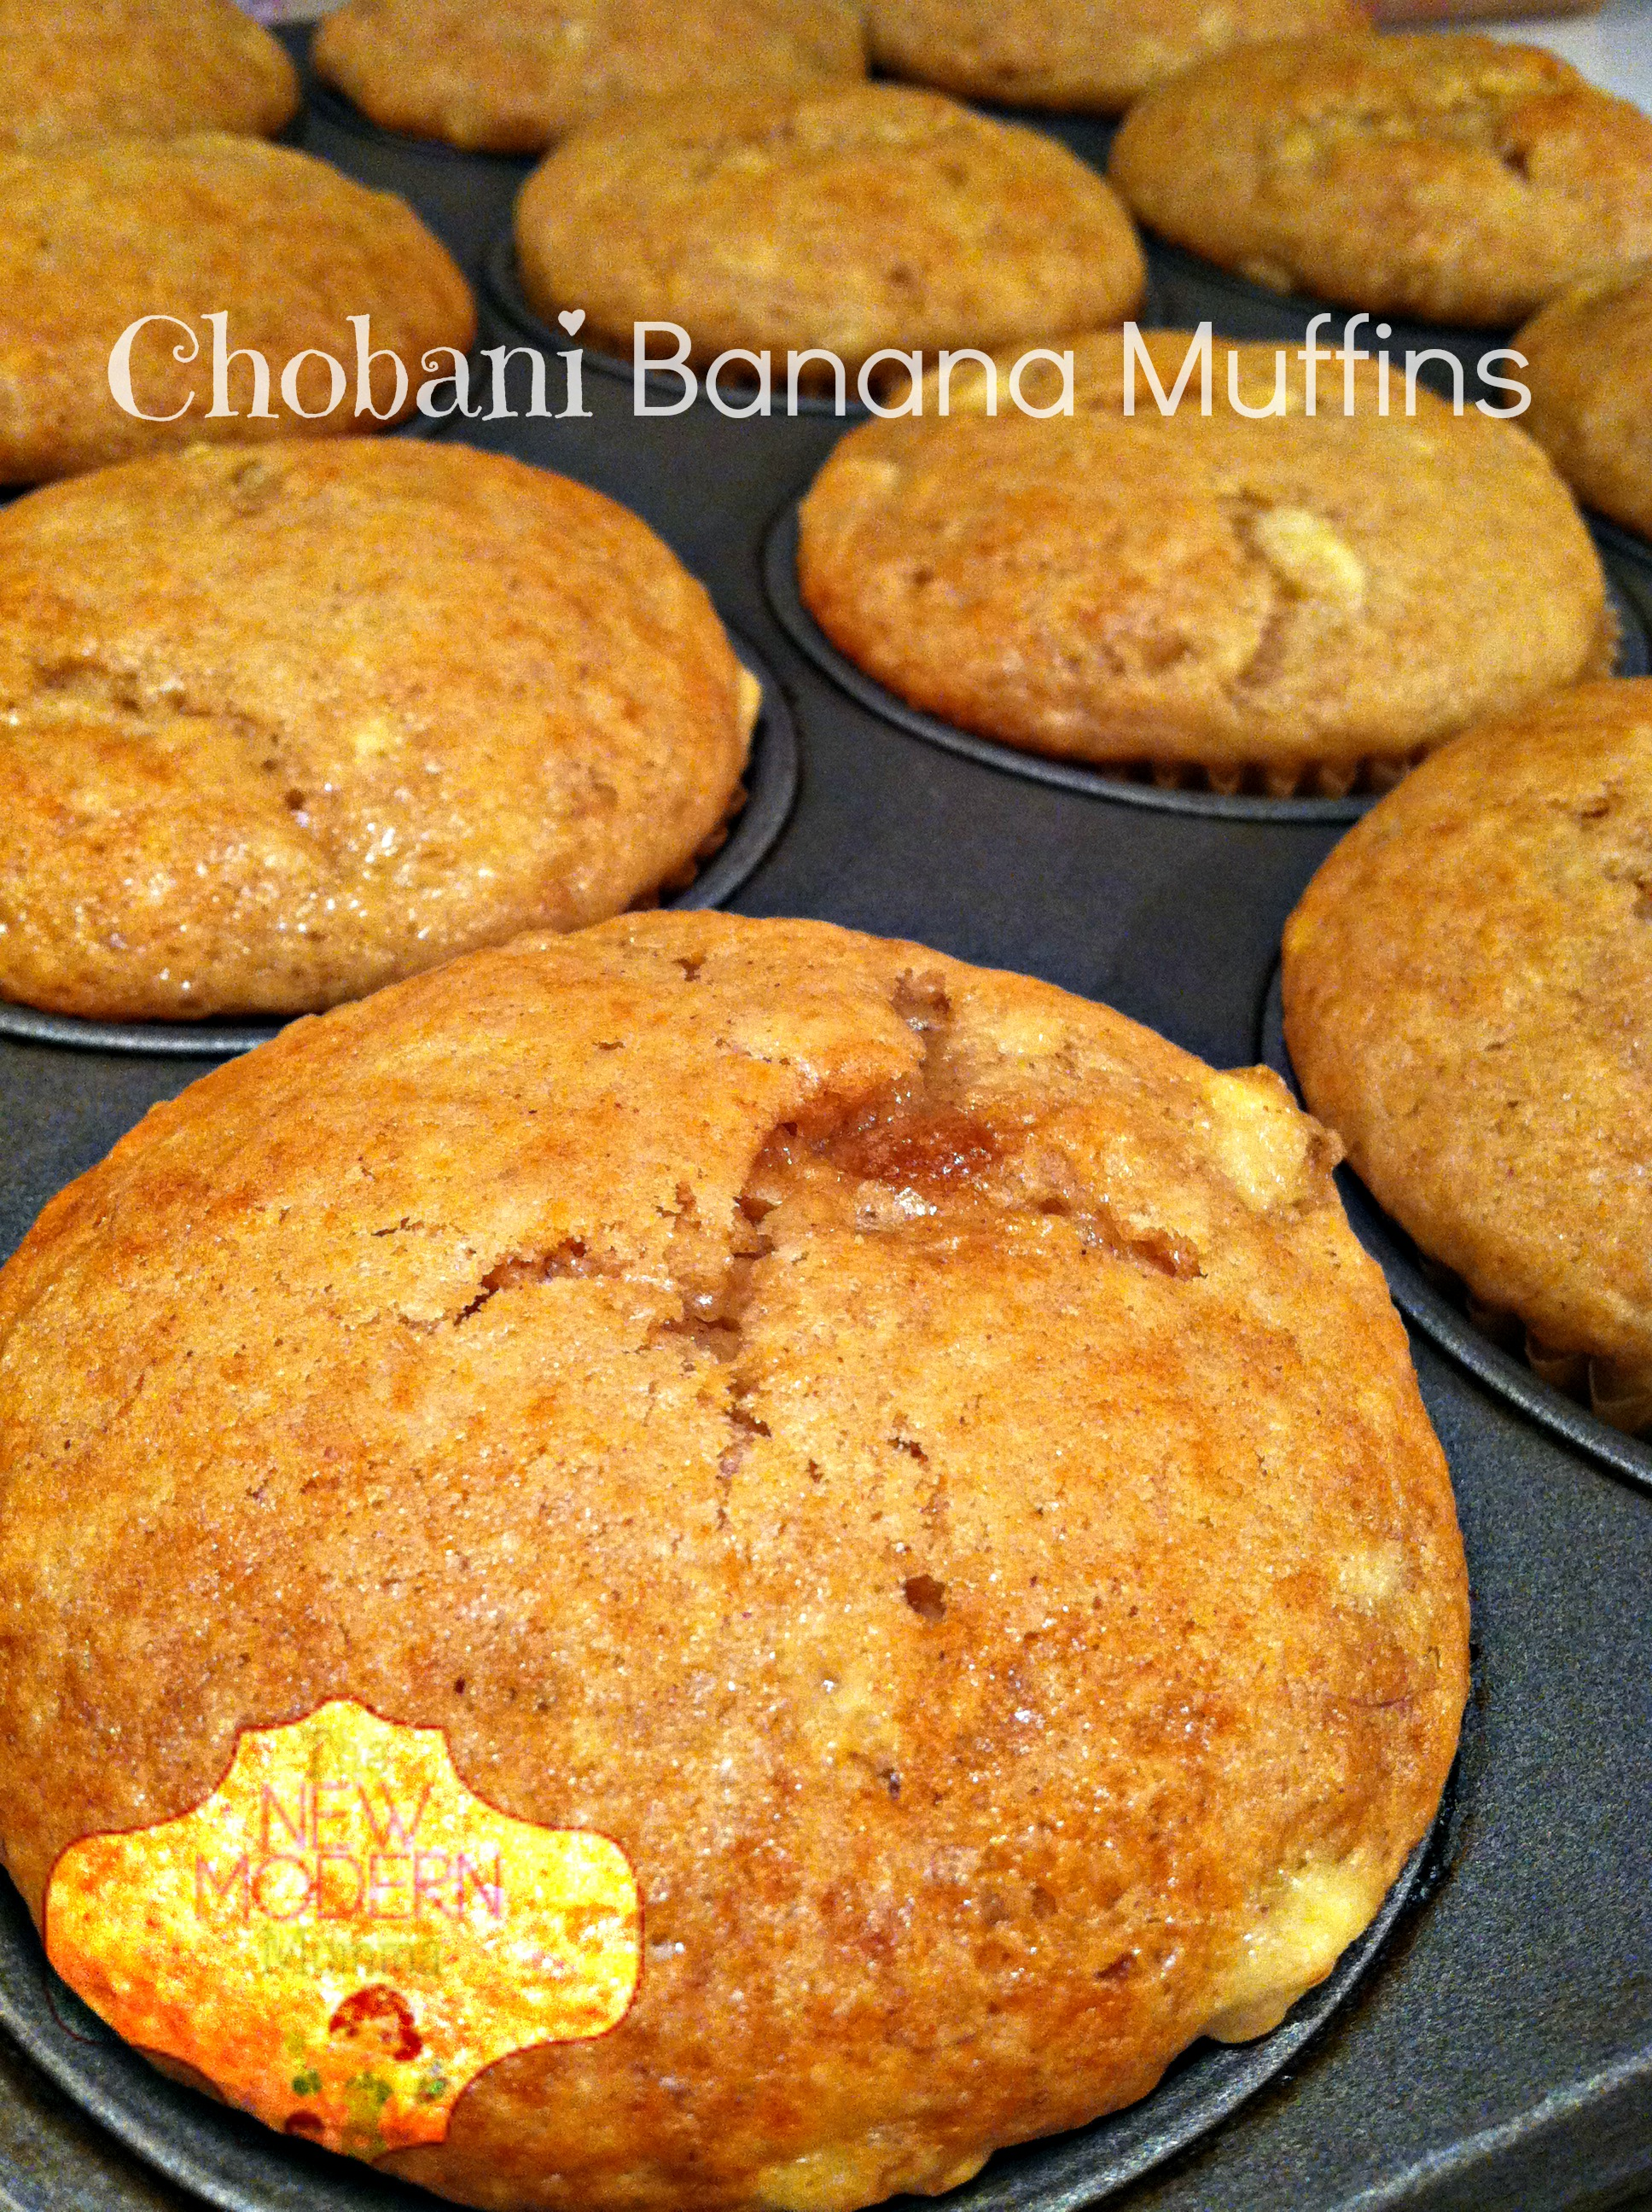 Chobani Banana Muffins | Tasty Tuesday